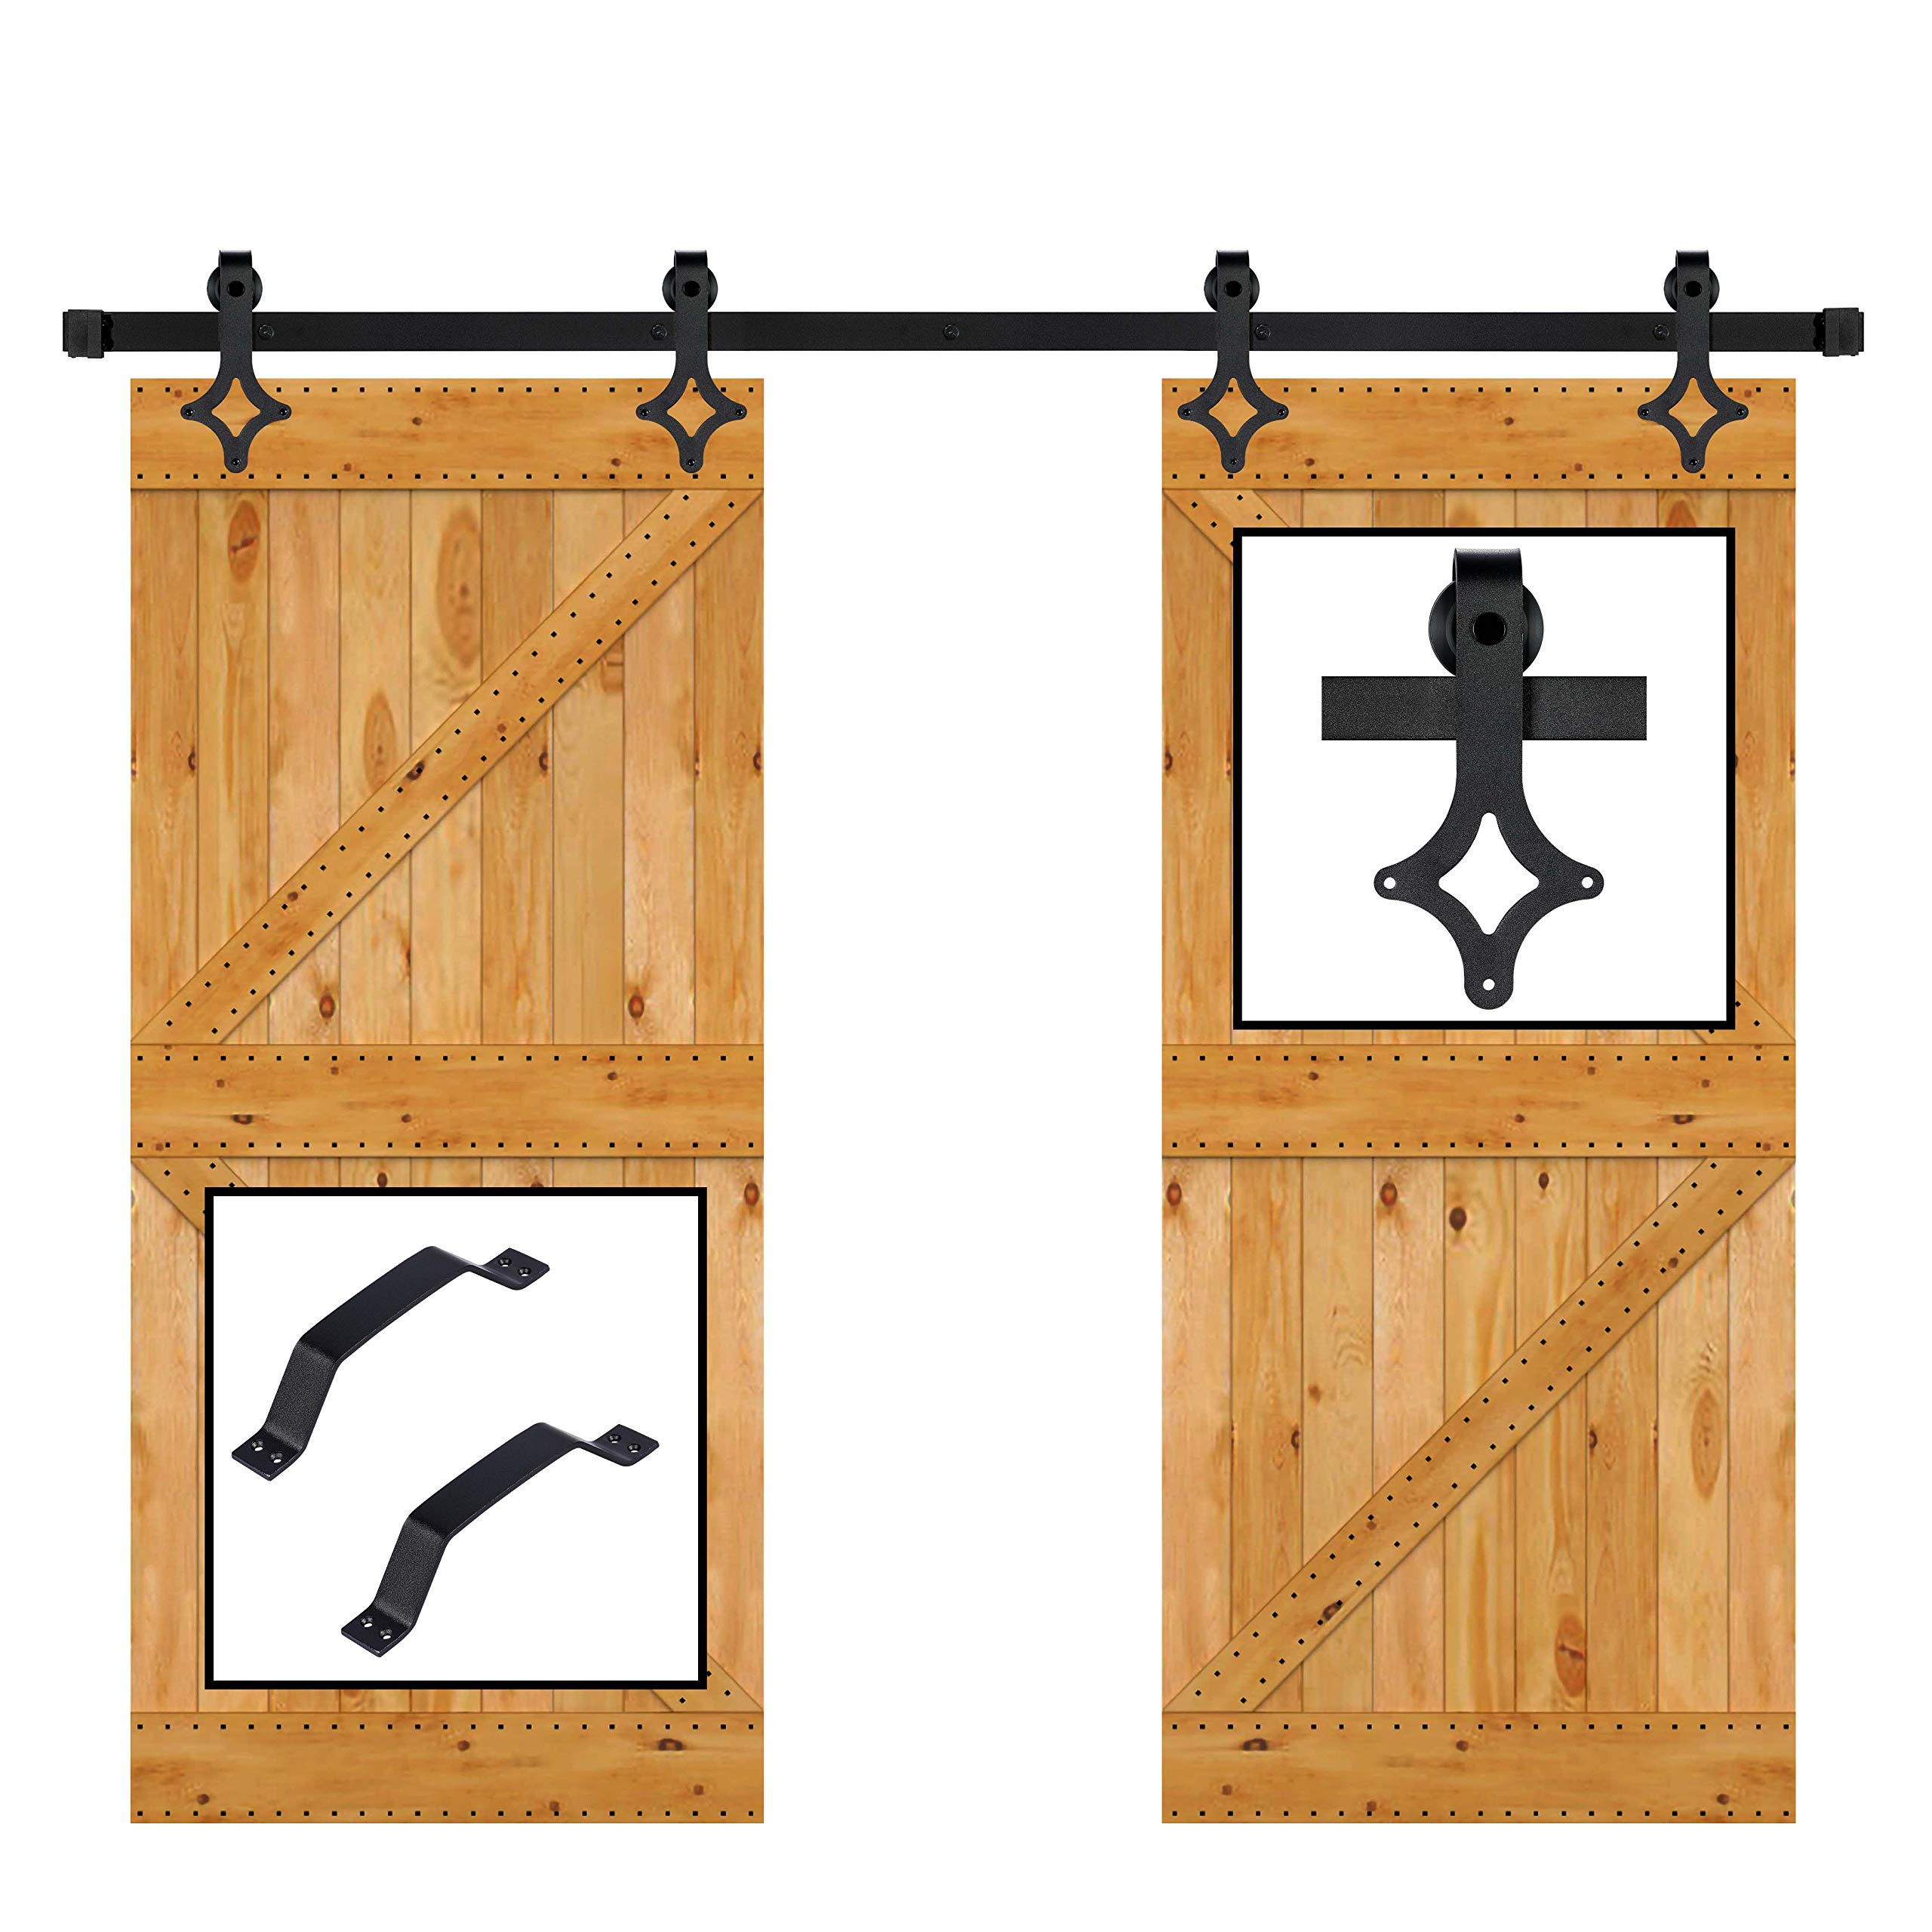 skysen 10FT Double Door Sliding Barn Door Hardware Kit Black (Rhombic Shape)